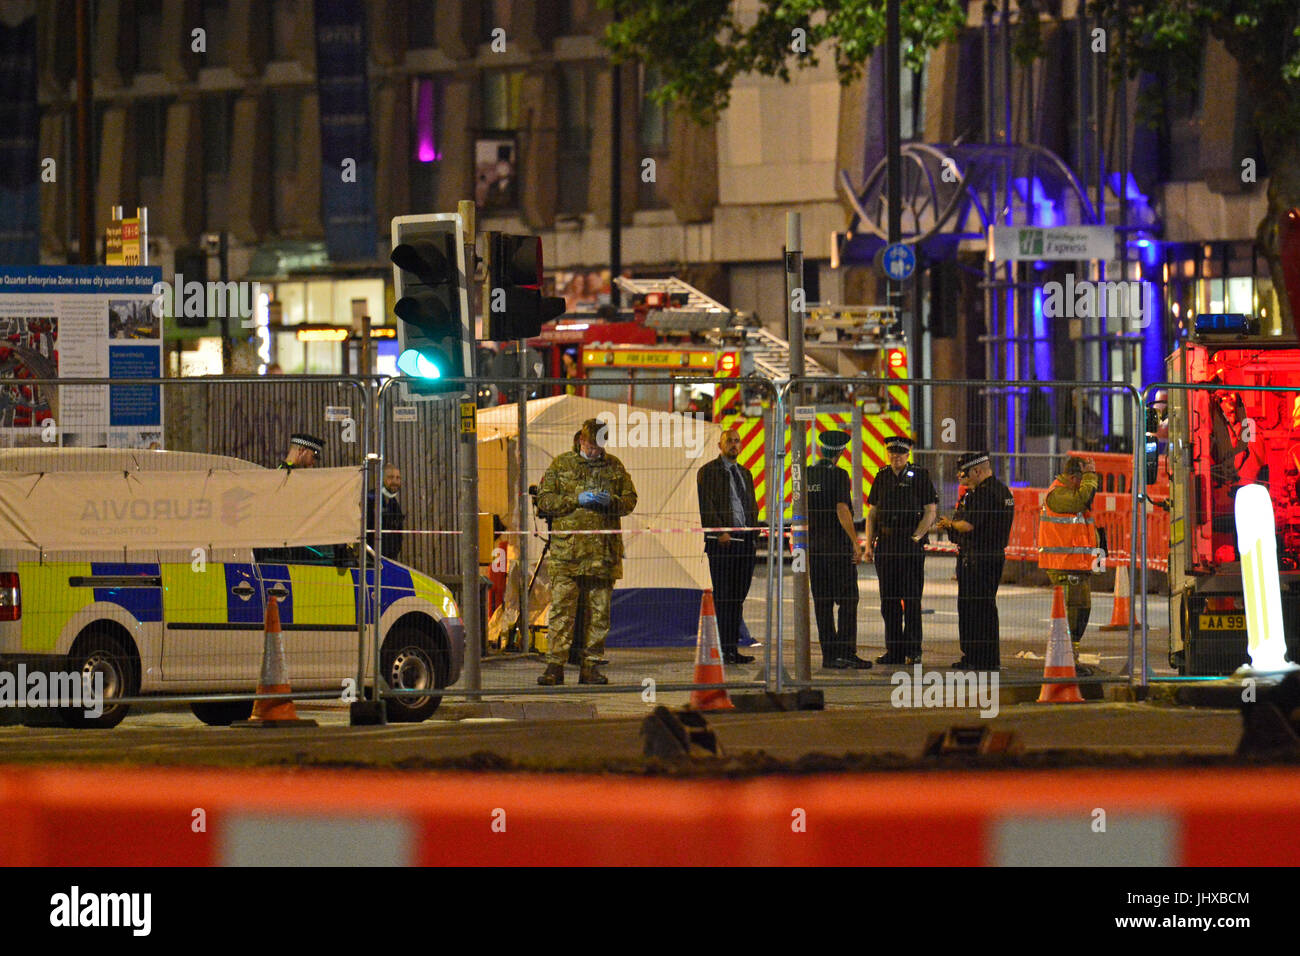 Bristol, UK. 16th July, 2017. Breaking in the last 20mins army bomb squad arrive at the scene of an incident on Stock Photo